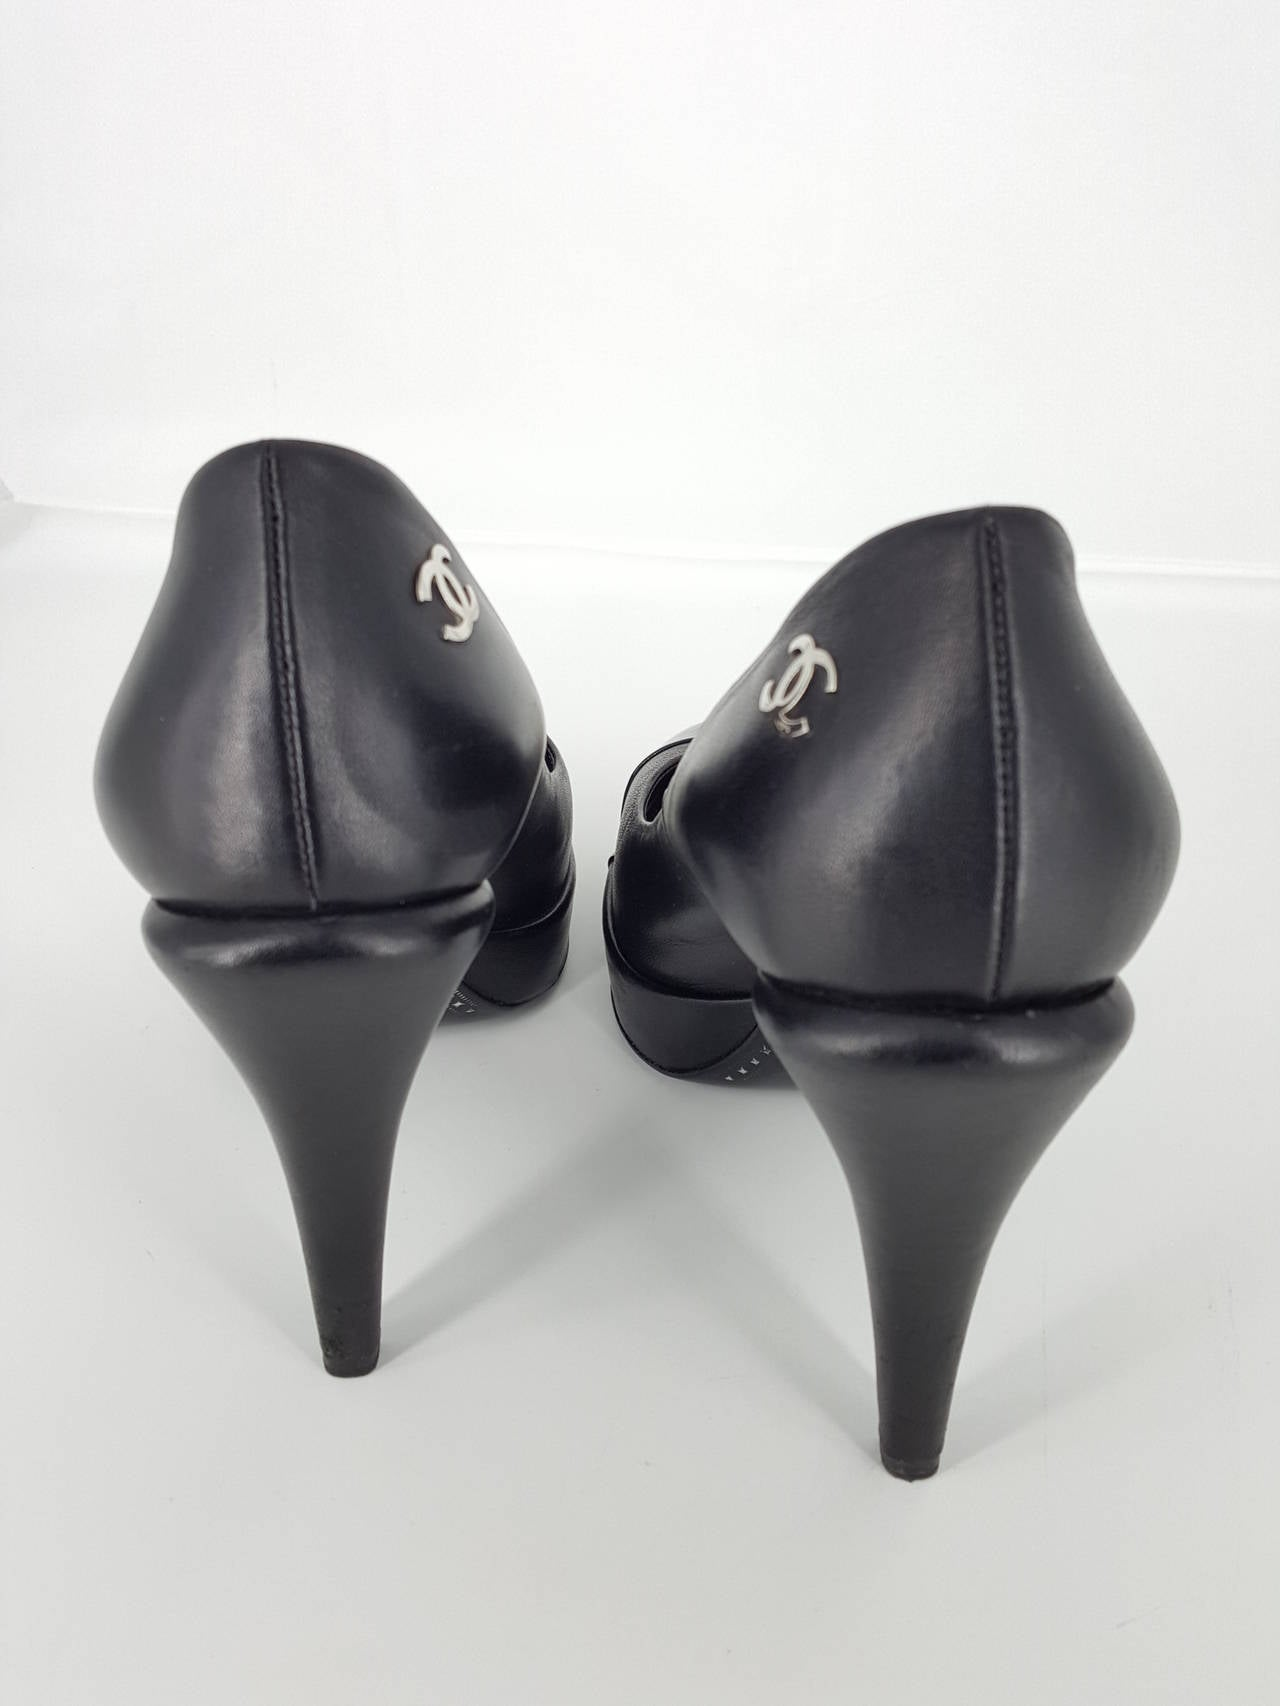 Chanel Black Leather Platform Heels With Patent Leather Toe Cap. size 38 4